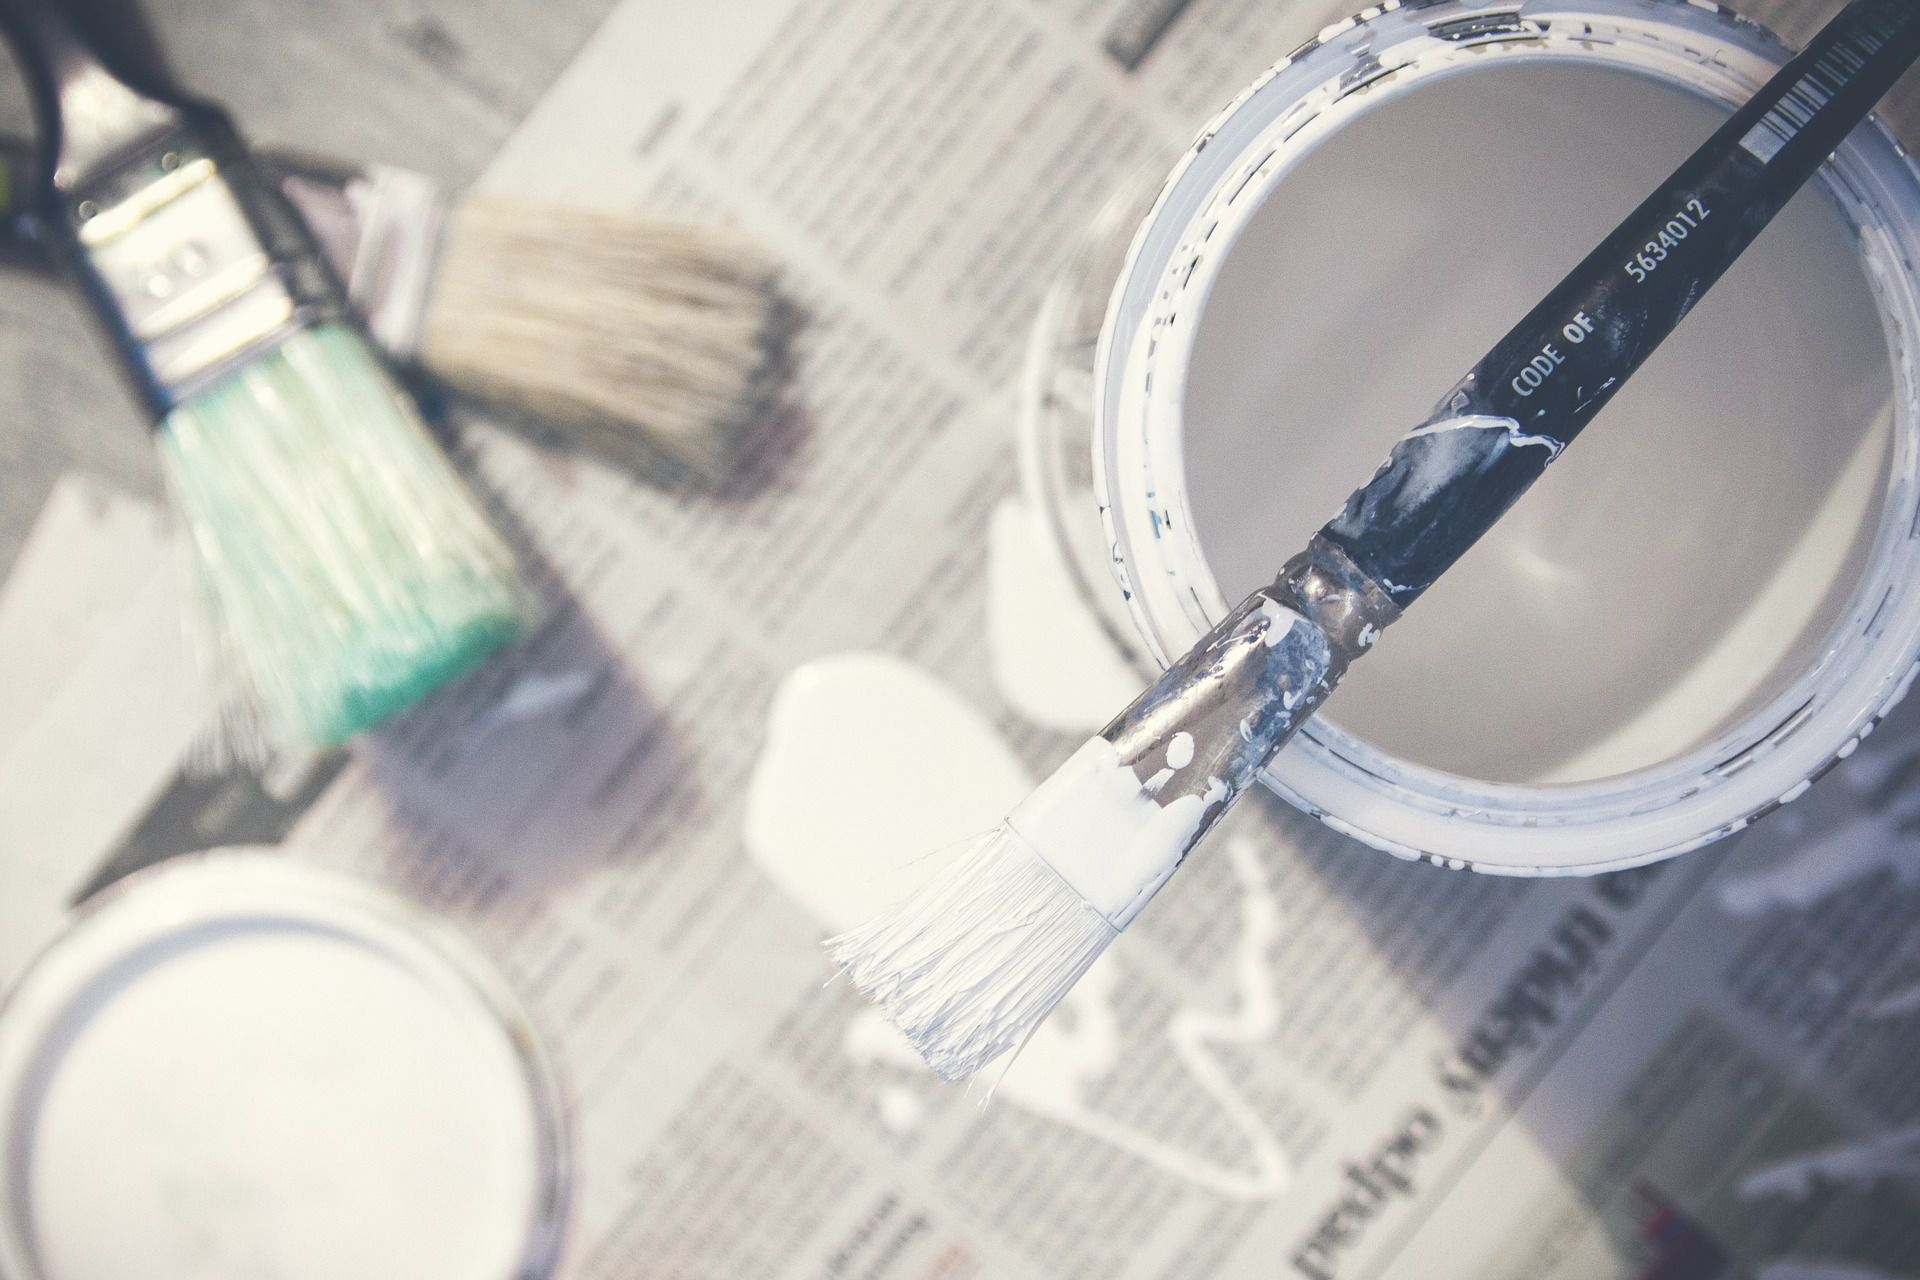 paint brushes and paint on newspaper.